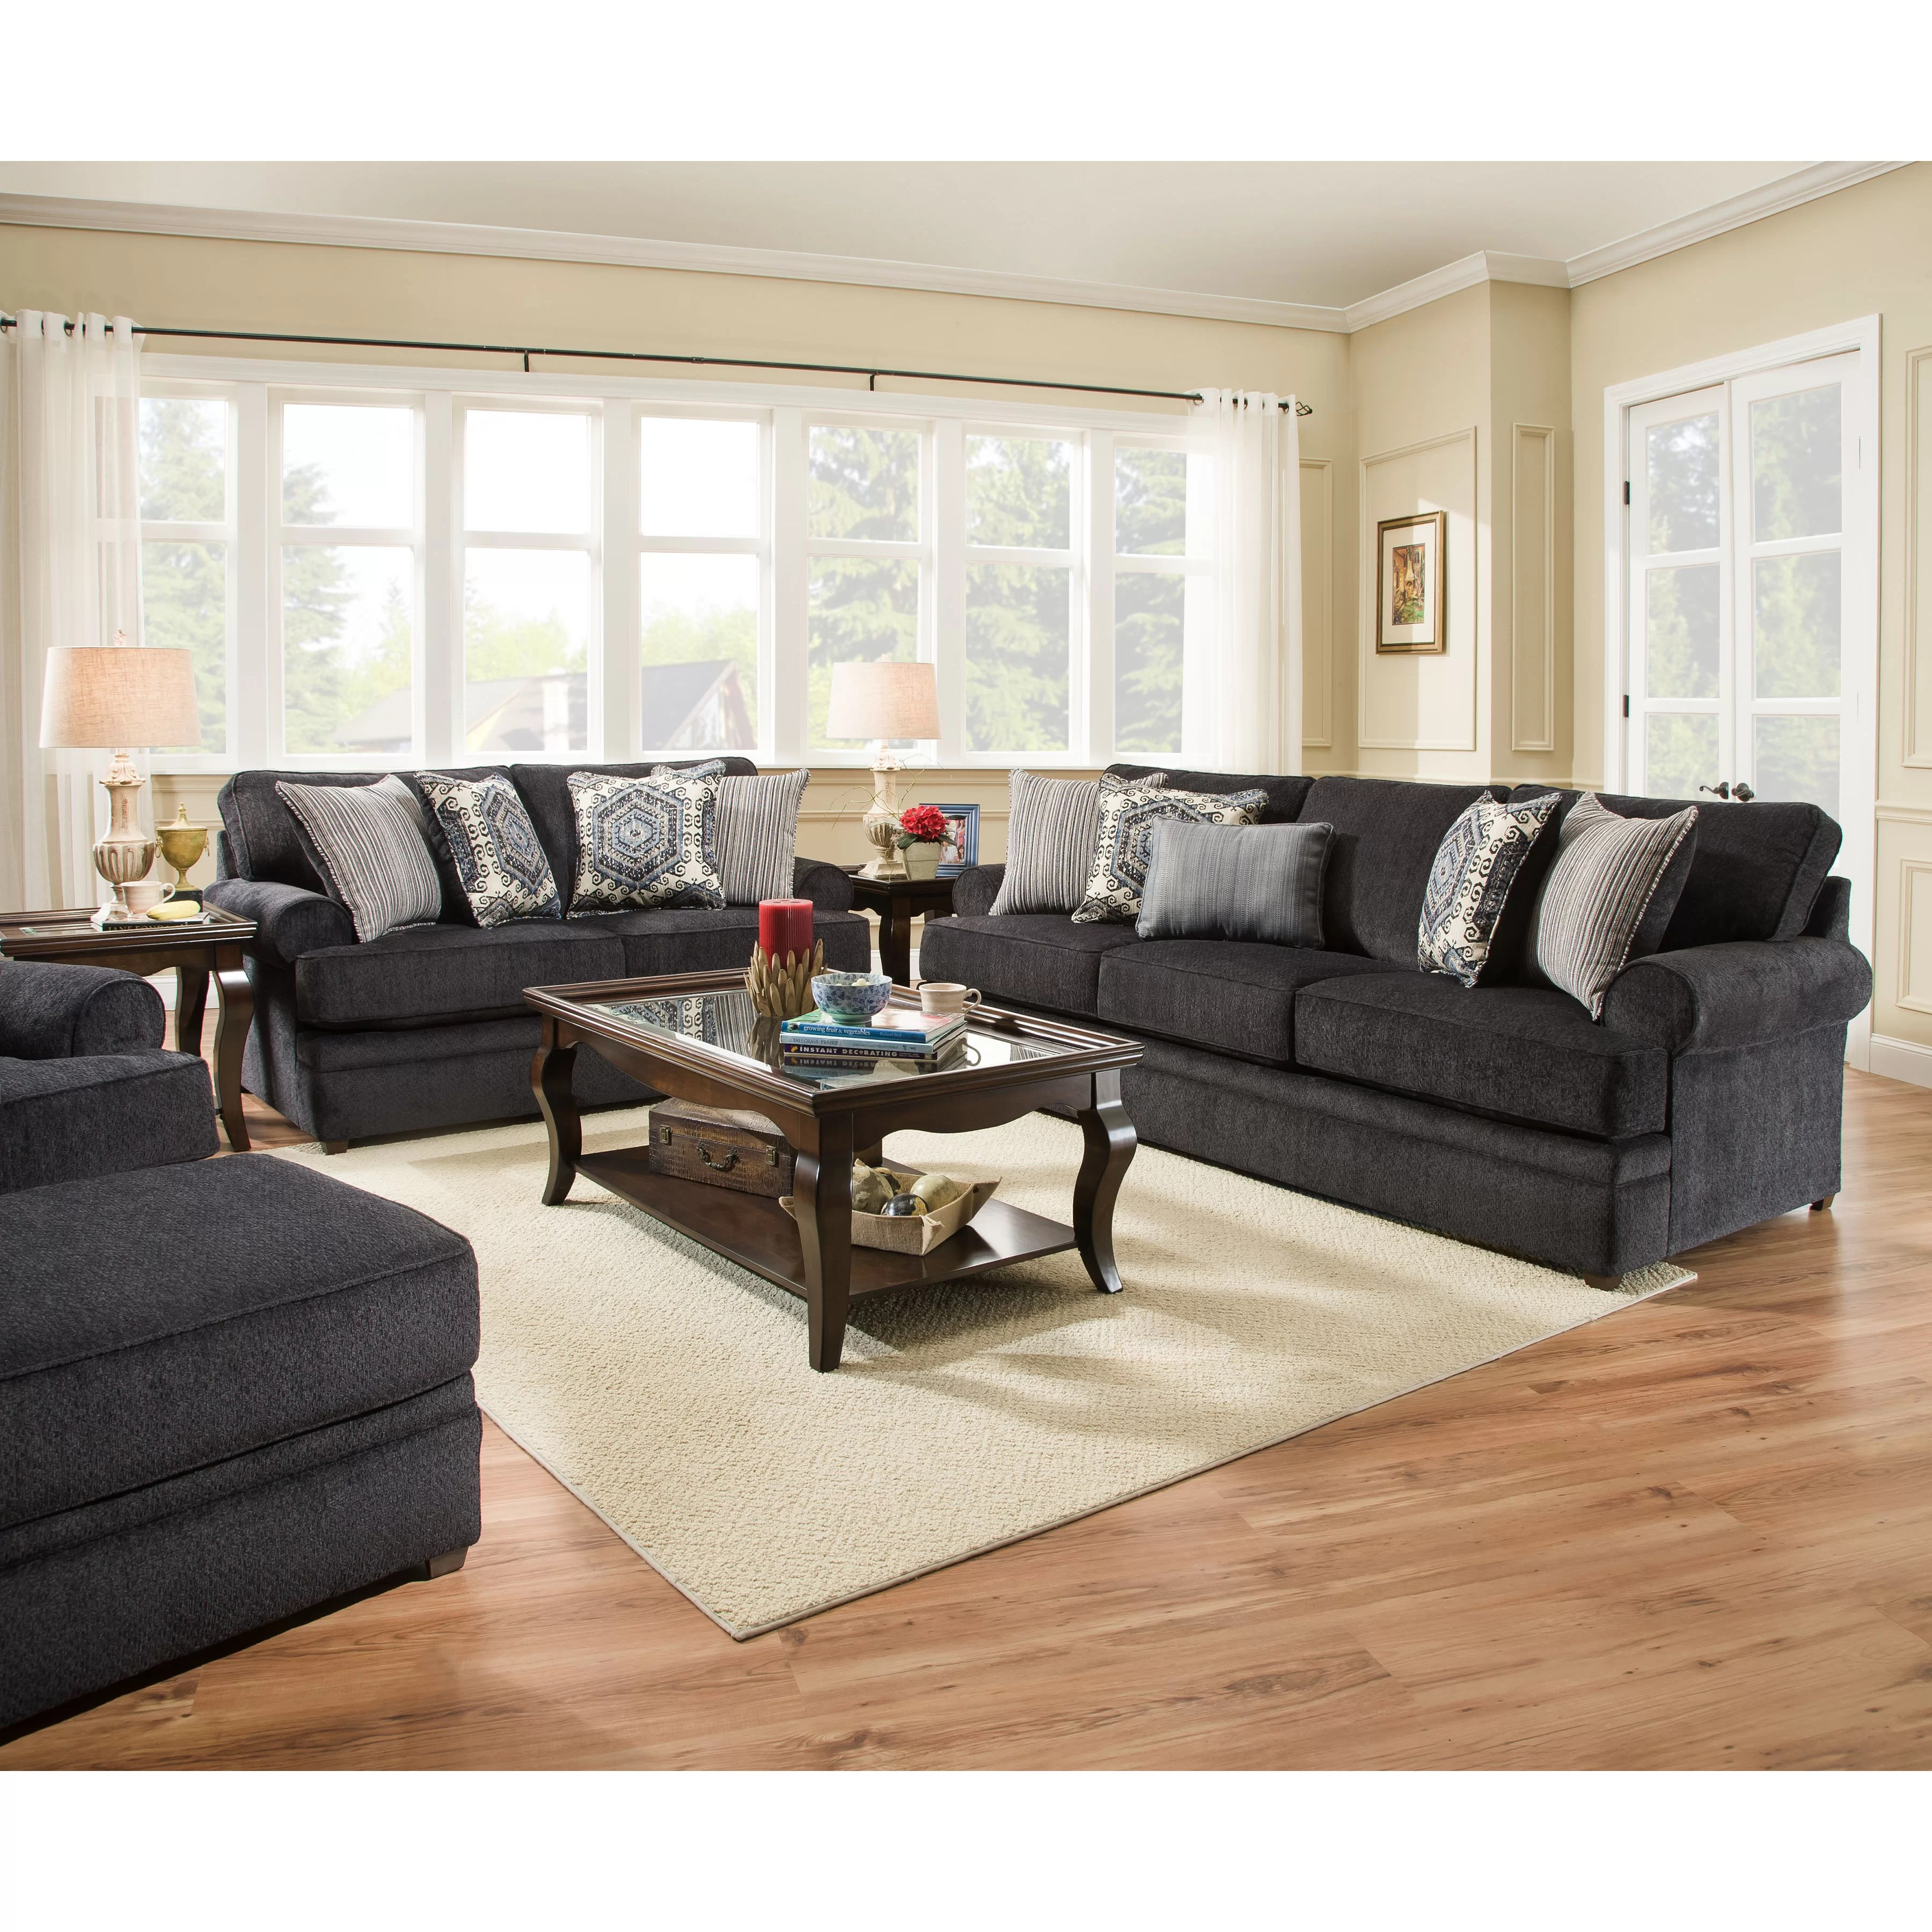 sofa company nl reviews affordable modular darby home co dorothy by simmons upholstery and